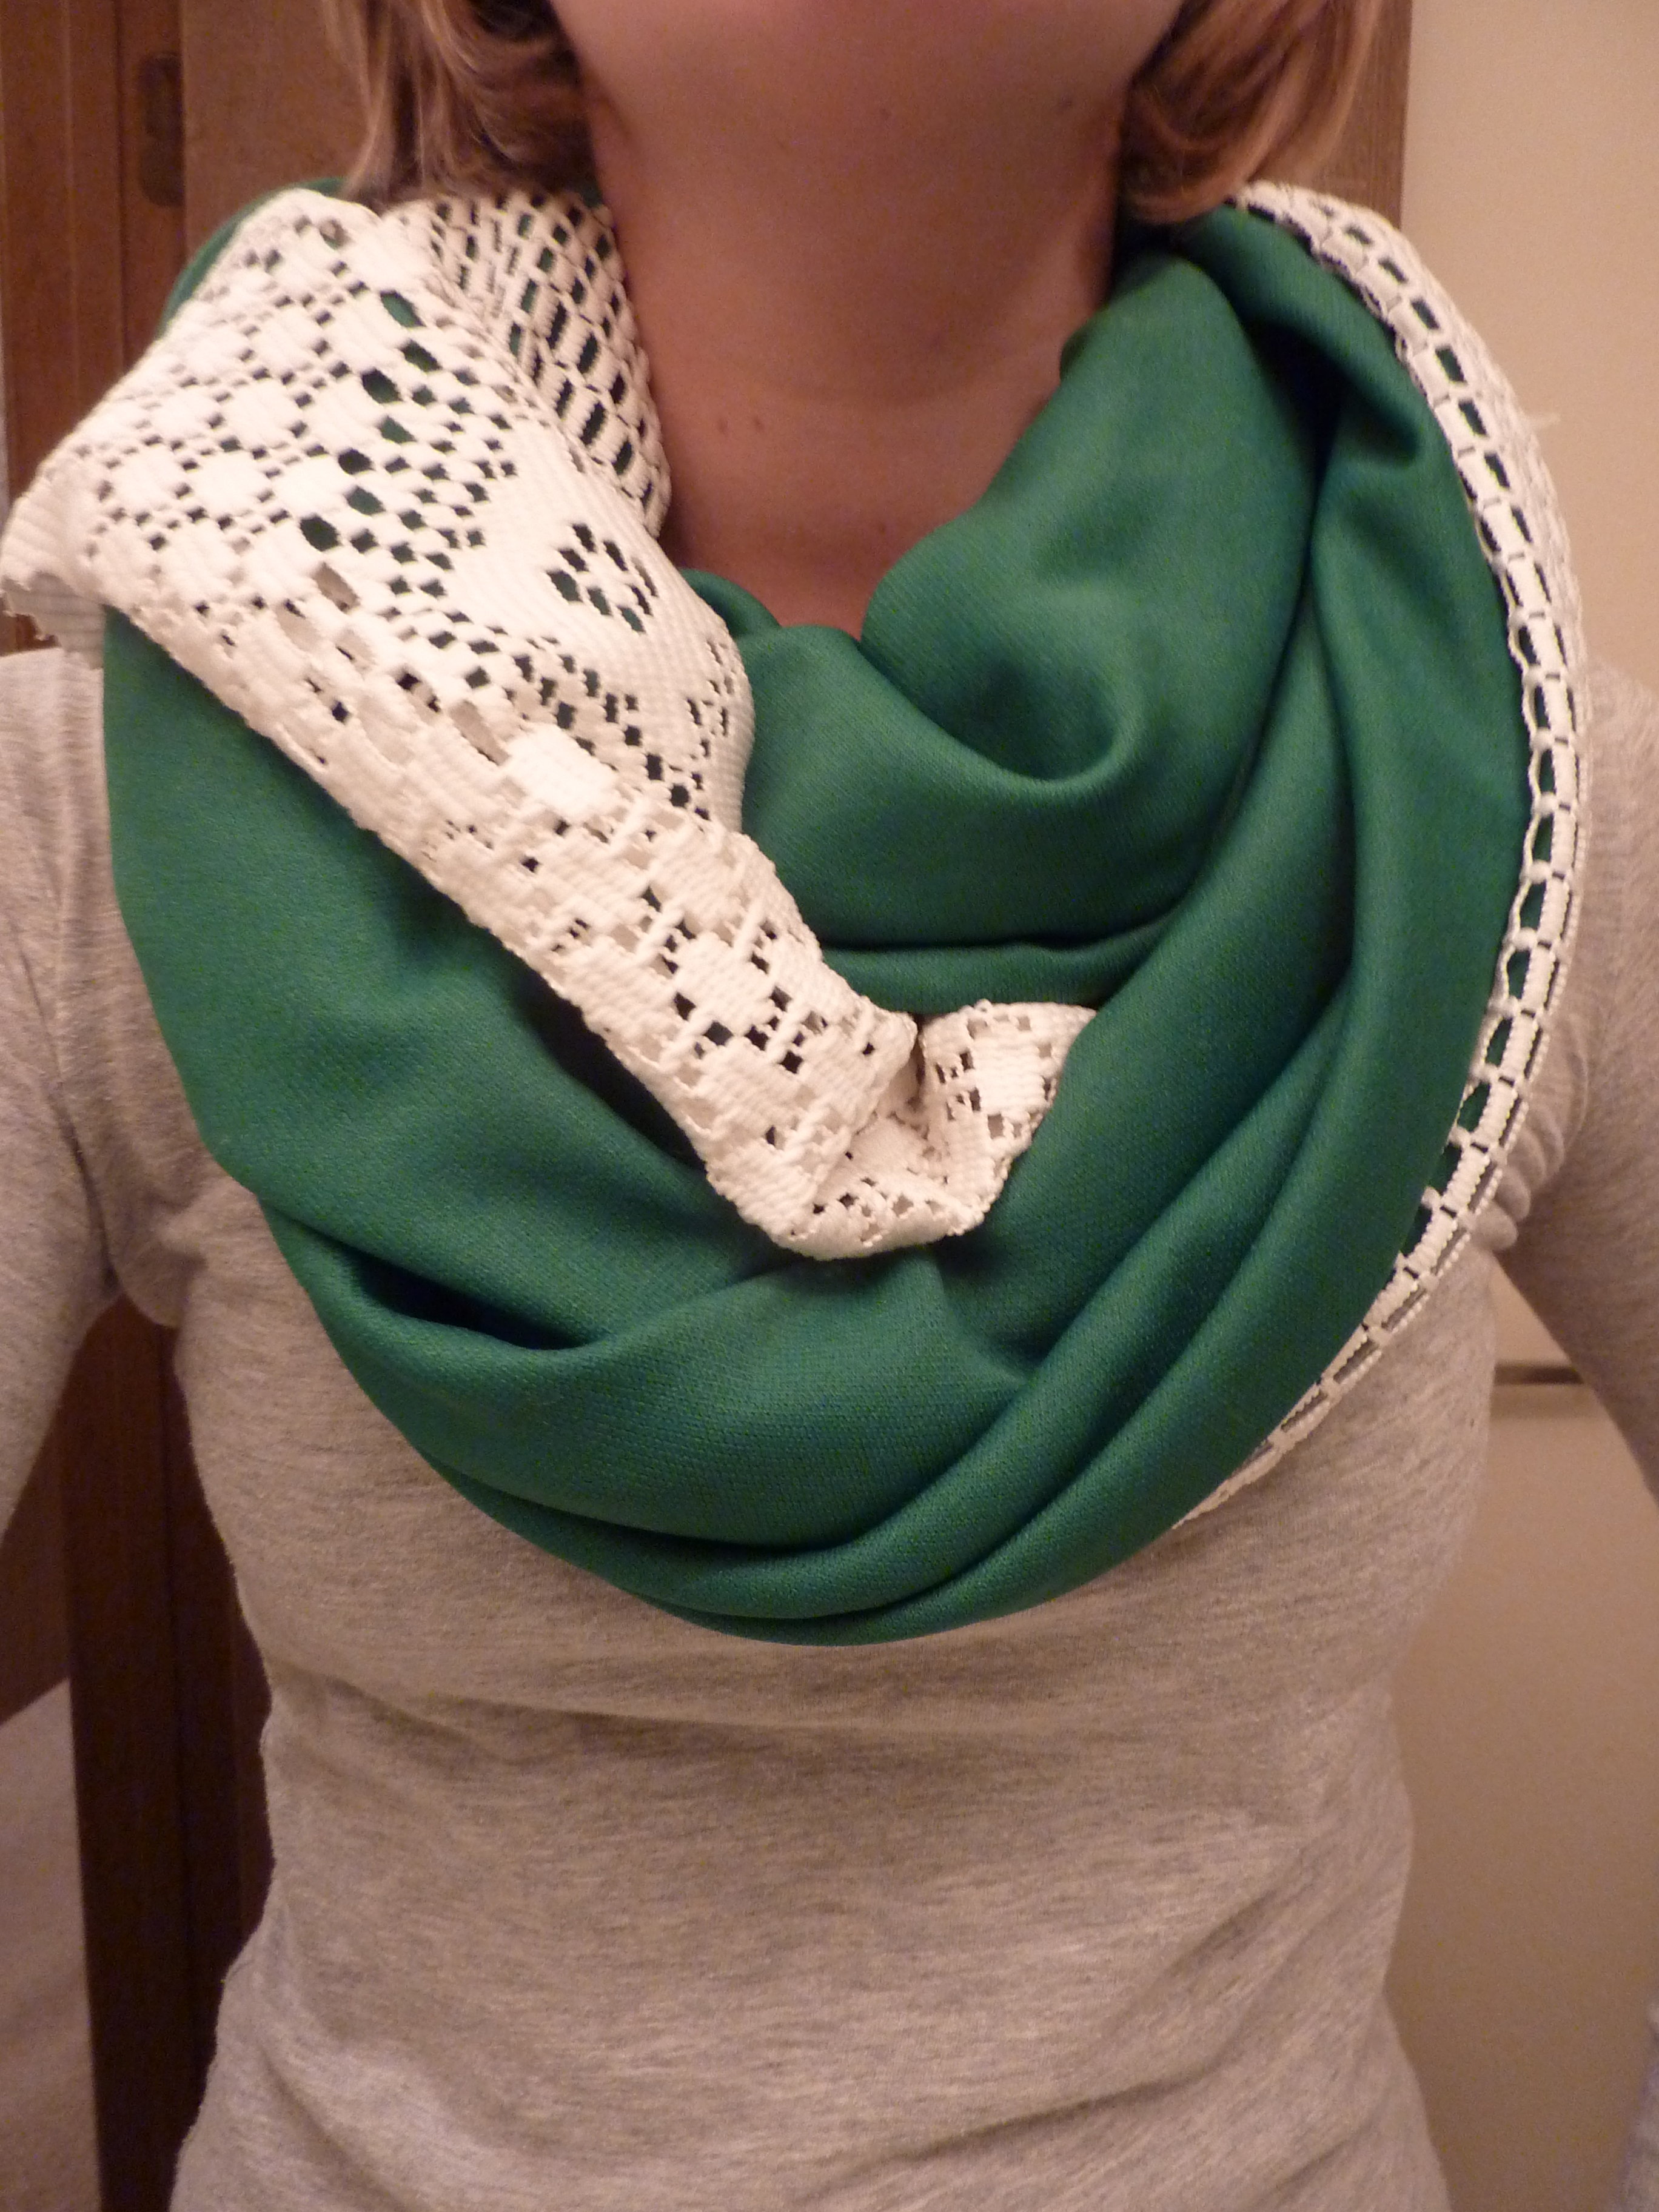 Lace infinity scarf with jersey knit